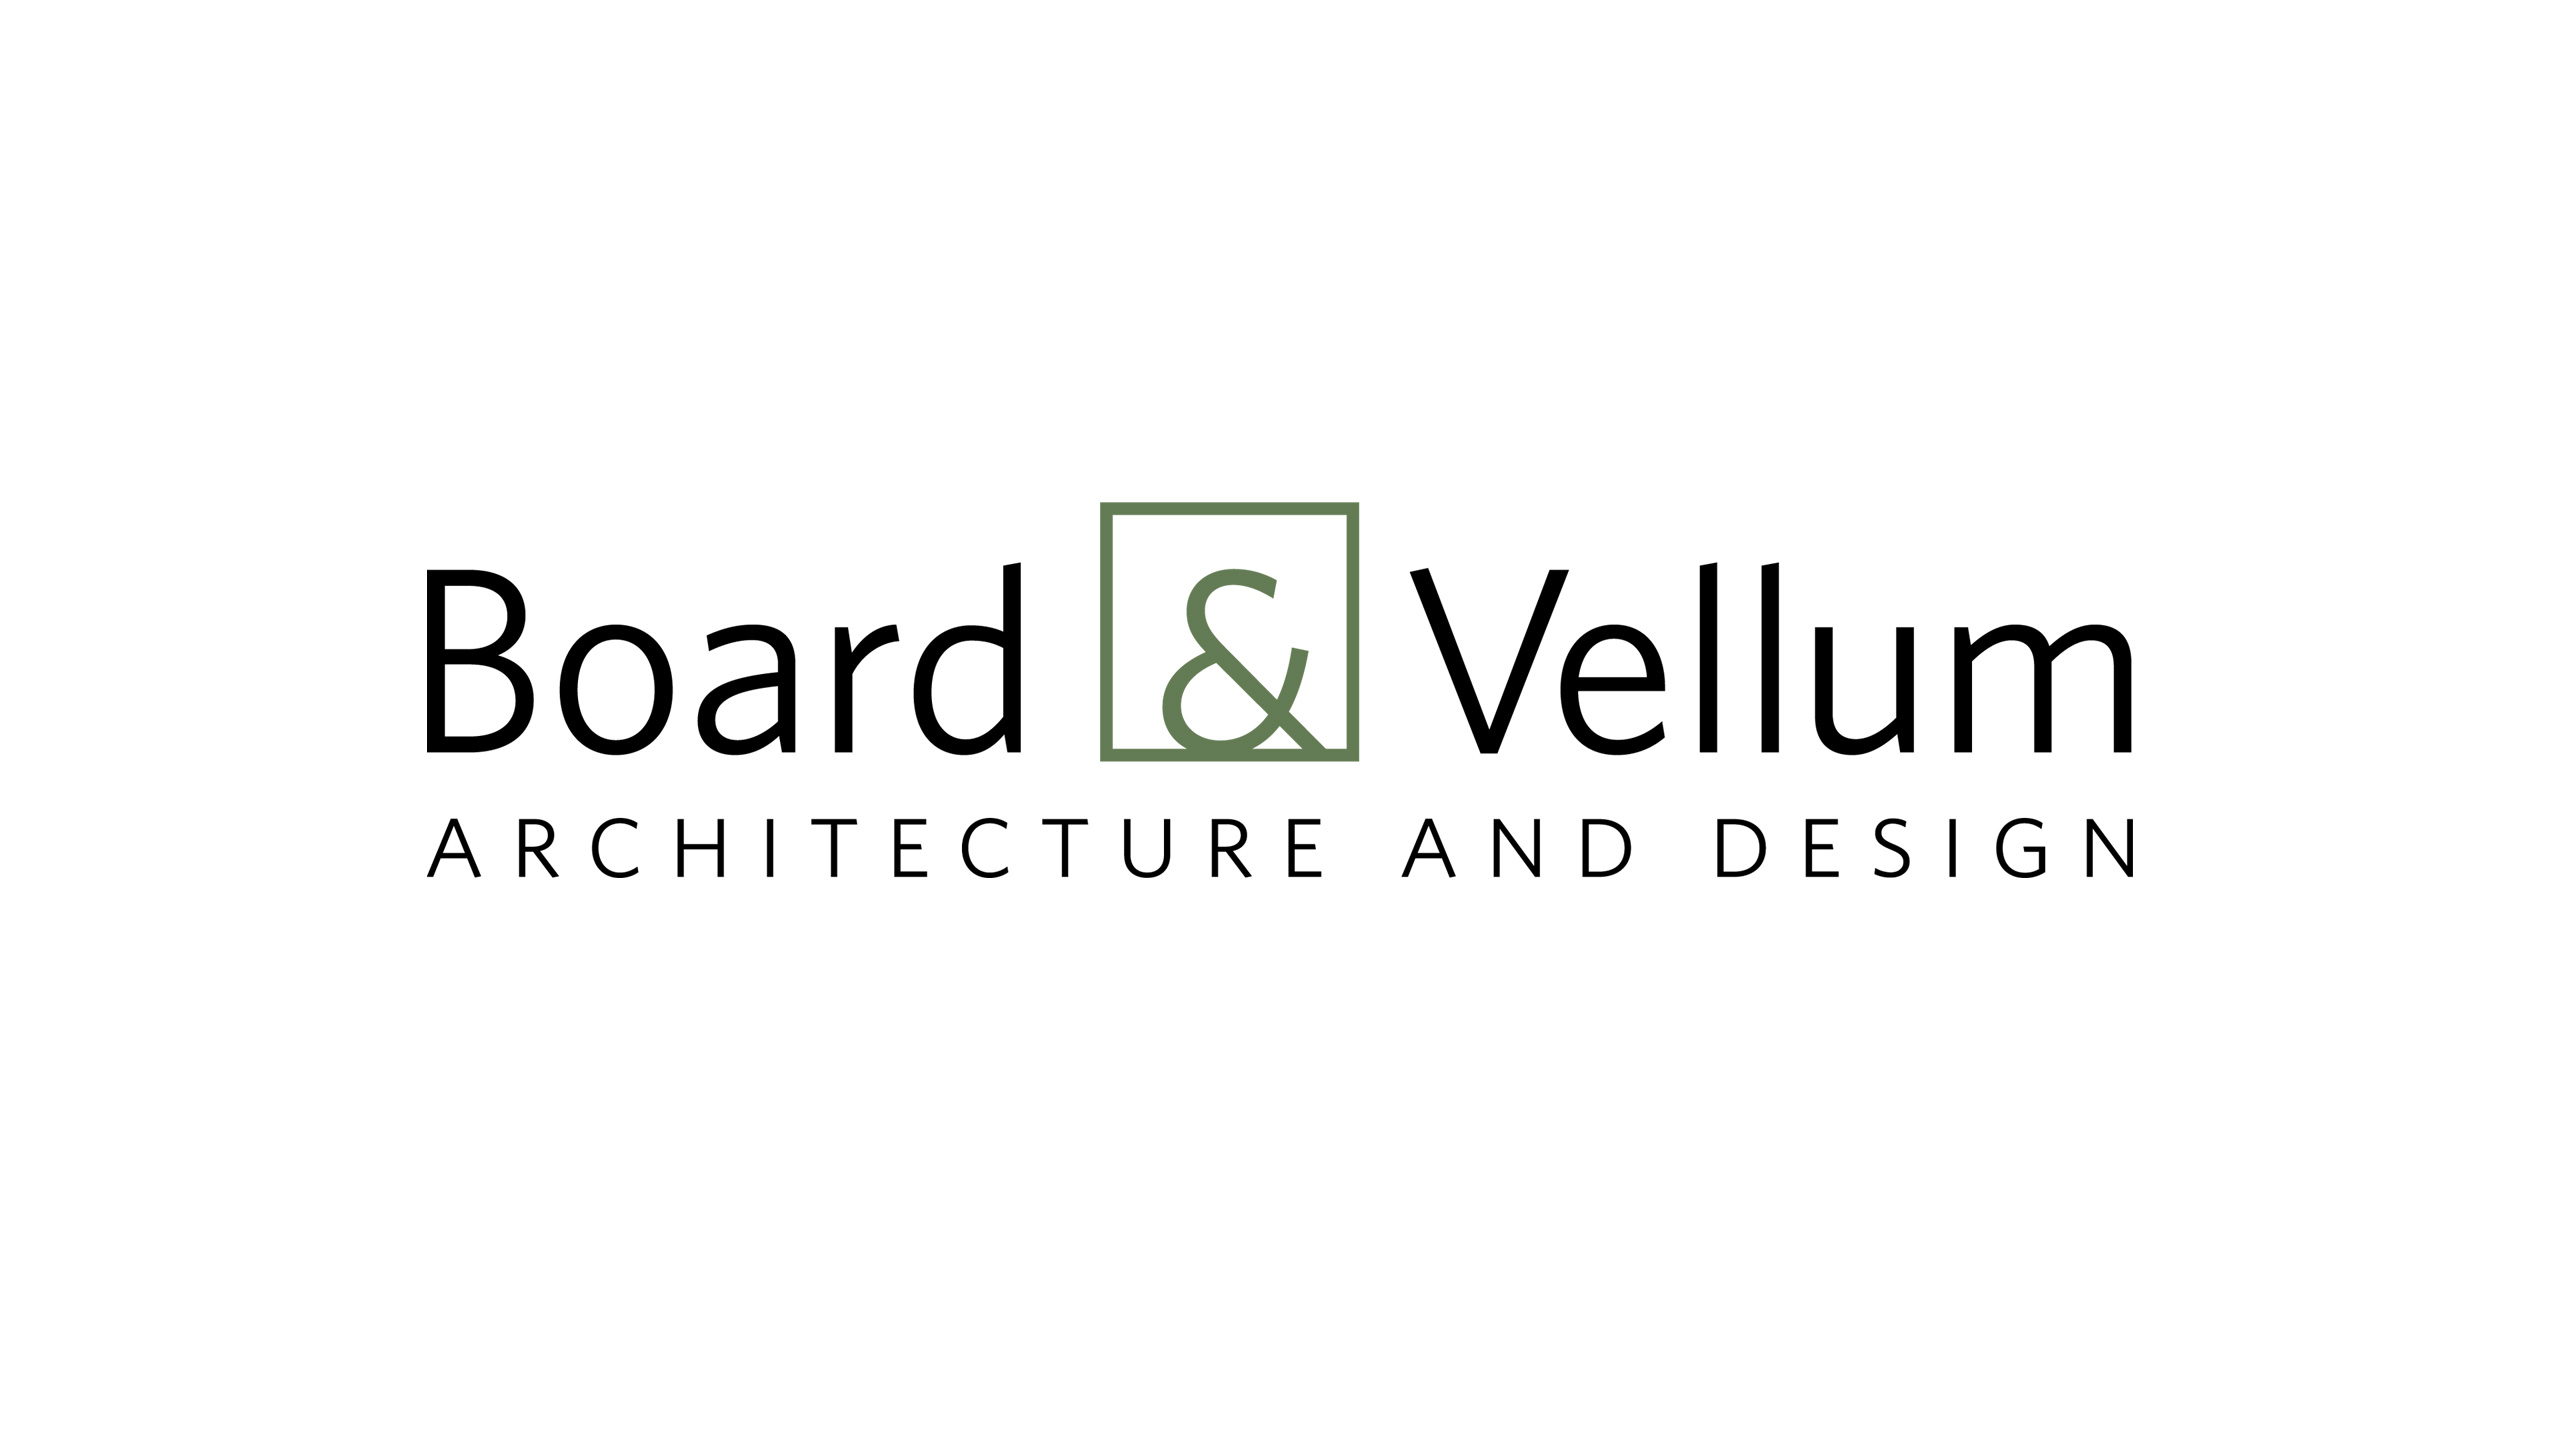 What do Architects' Acronyms Mean? – Board & Vellum